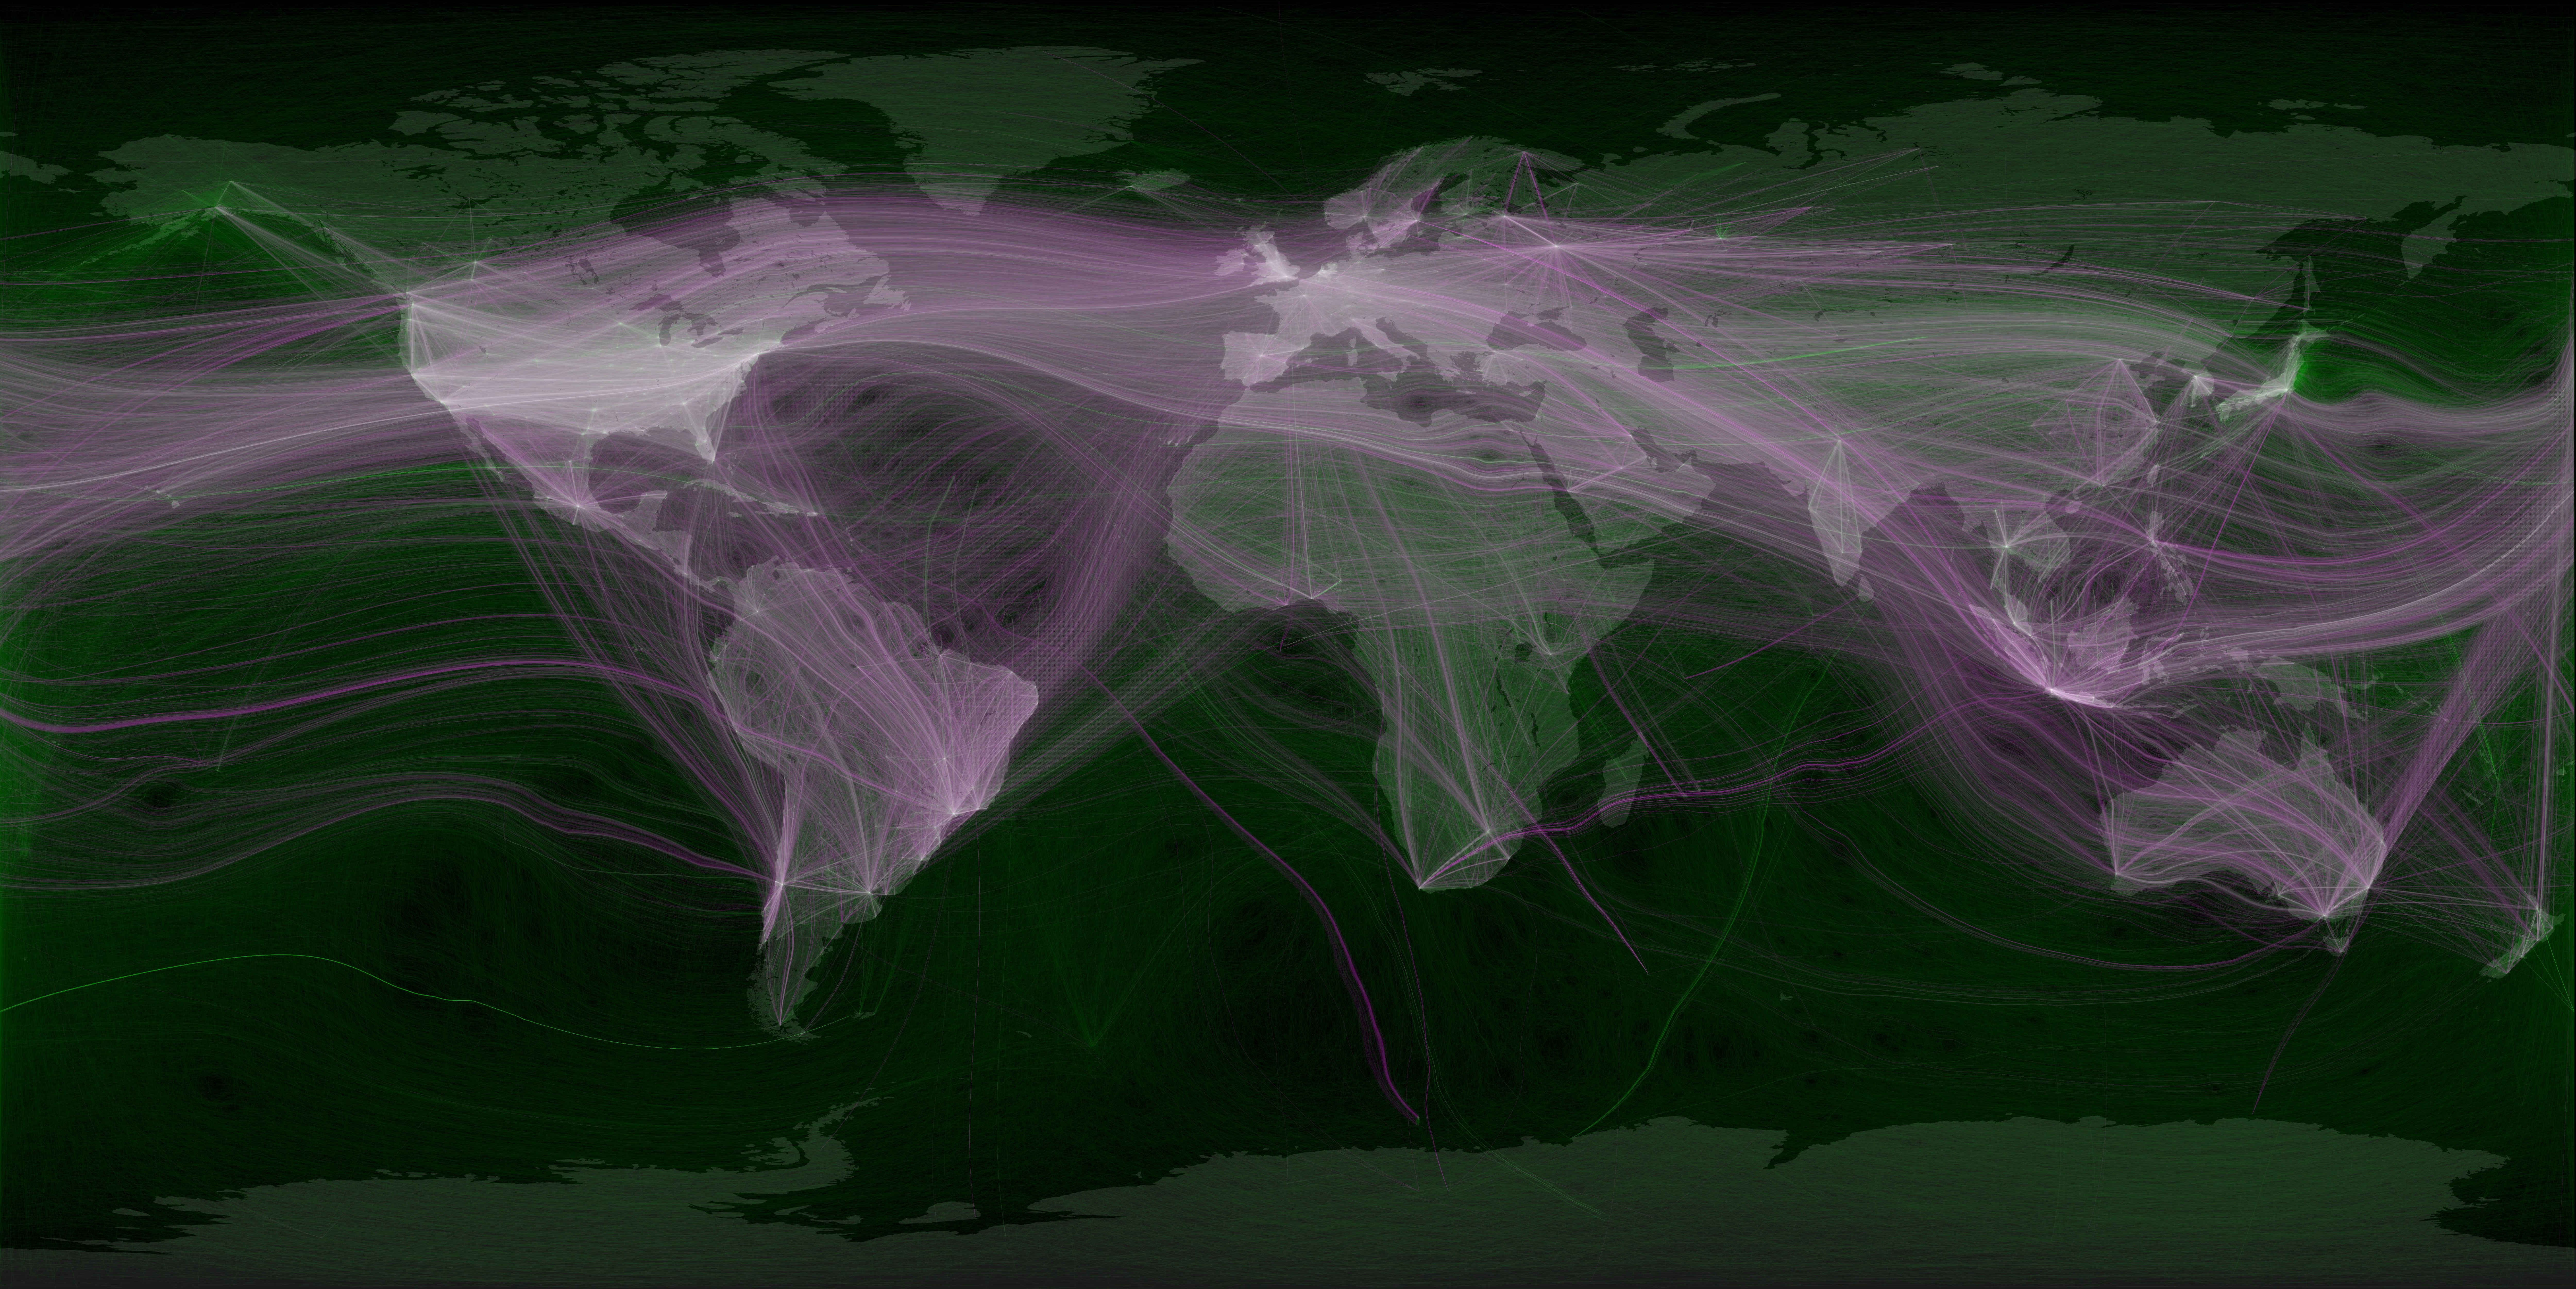 World travel and communications recorded on Twitter. Credit: Eric Fischer, CC BY 2.0, bit.ly/1wFy31y.